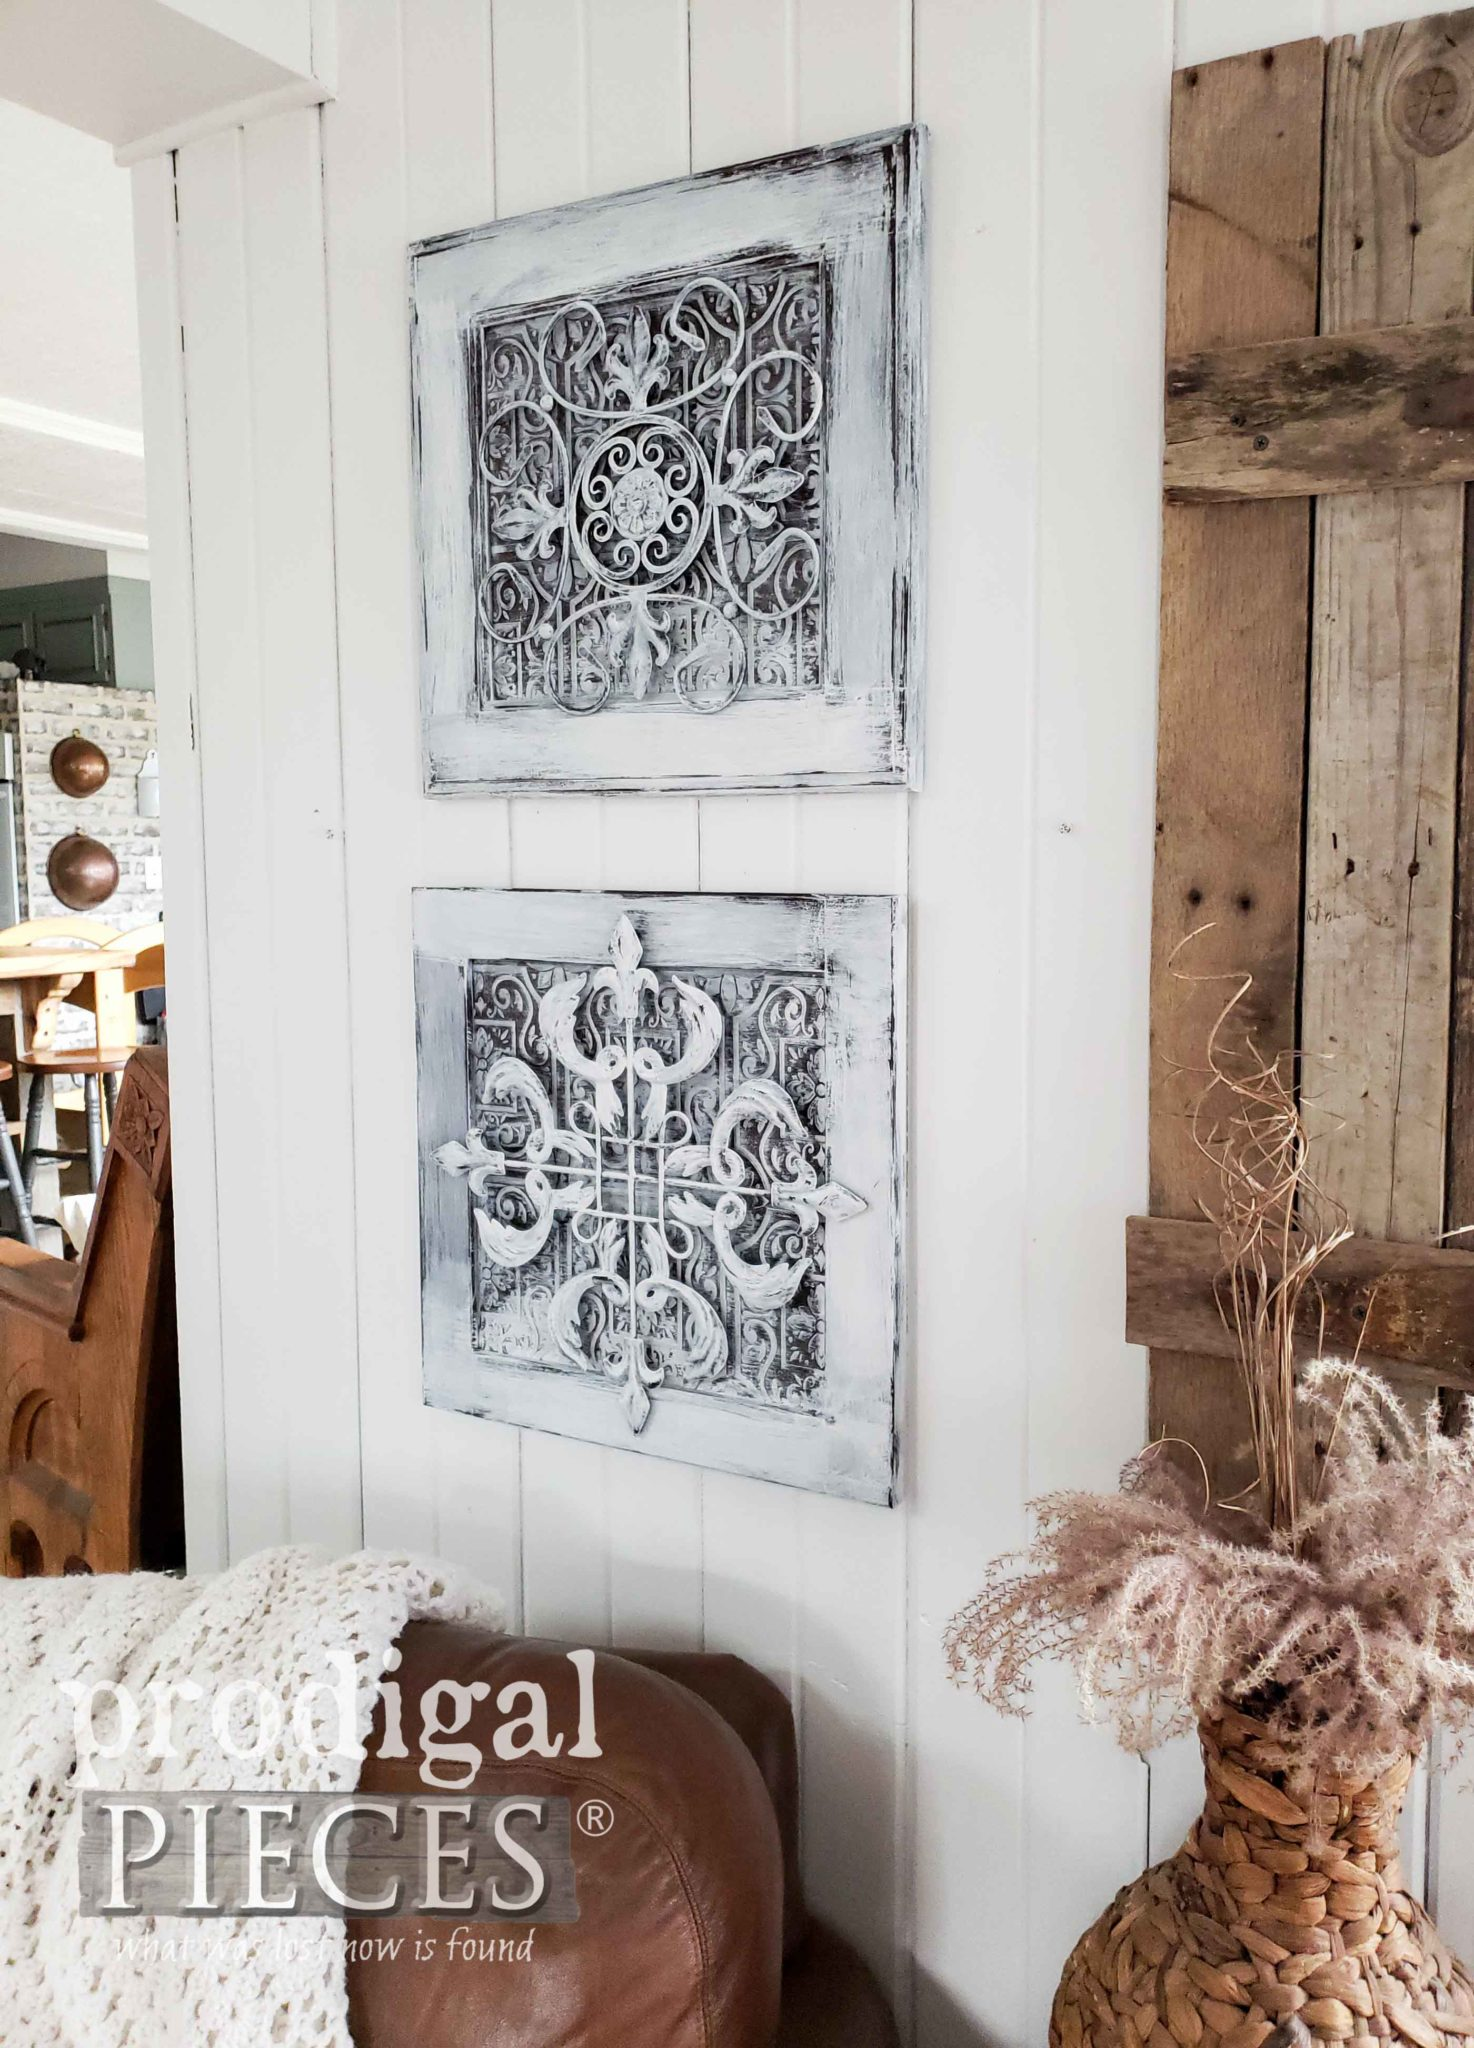 Rustic Farmhouse Wall Decor Made from Upcycled Materials | Details at Prodigal Pieces | prodigalpieces.com #prodigalpieces #diy #farmhouse #home #homedecor #handmade #videos